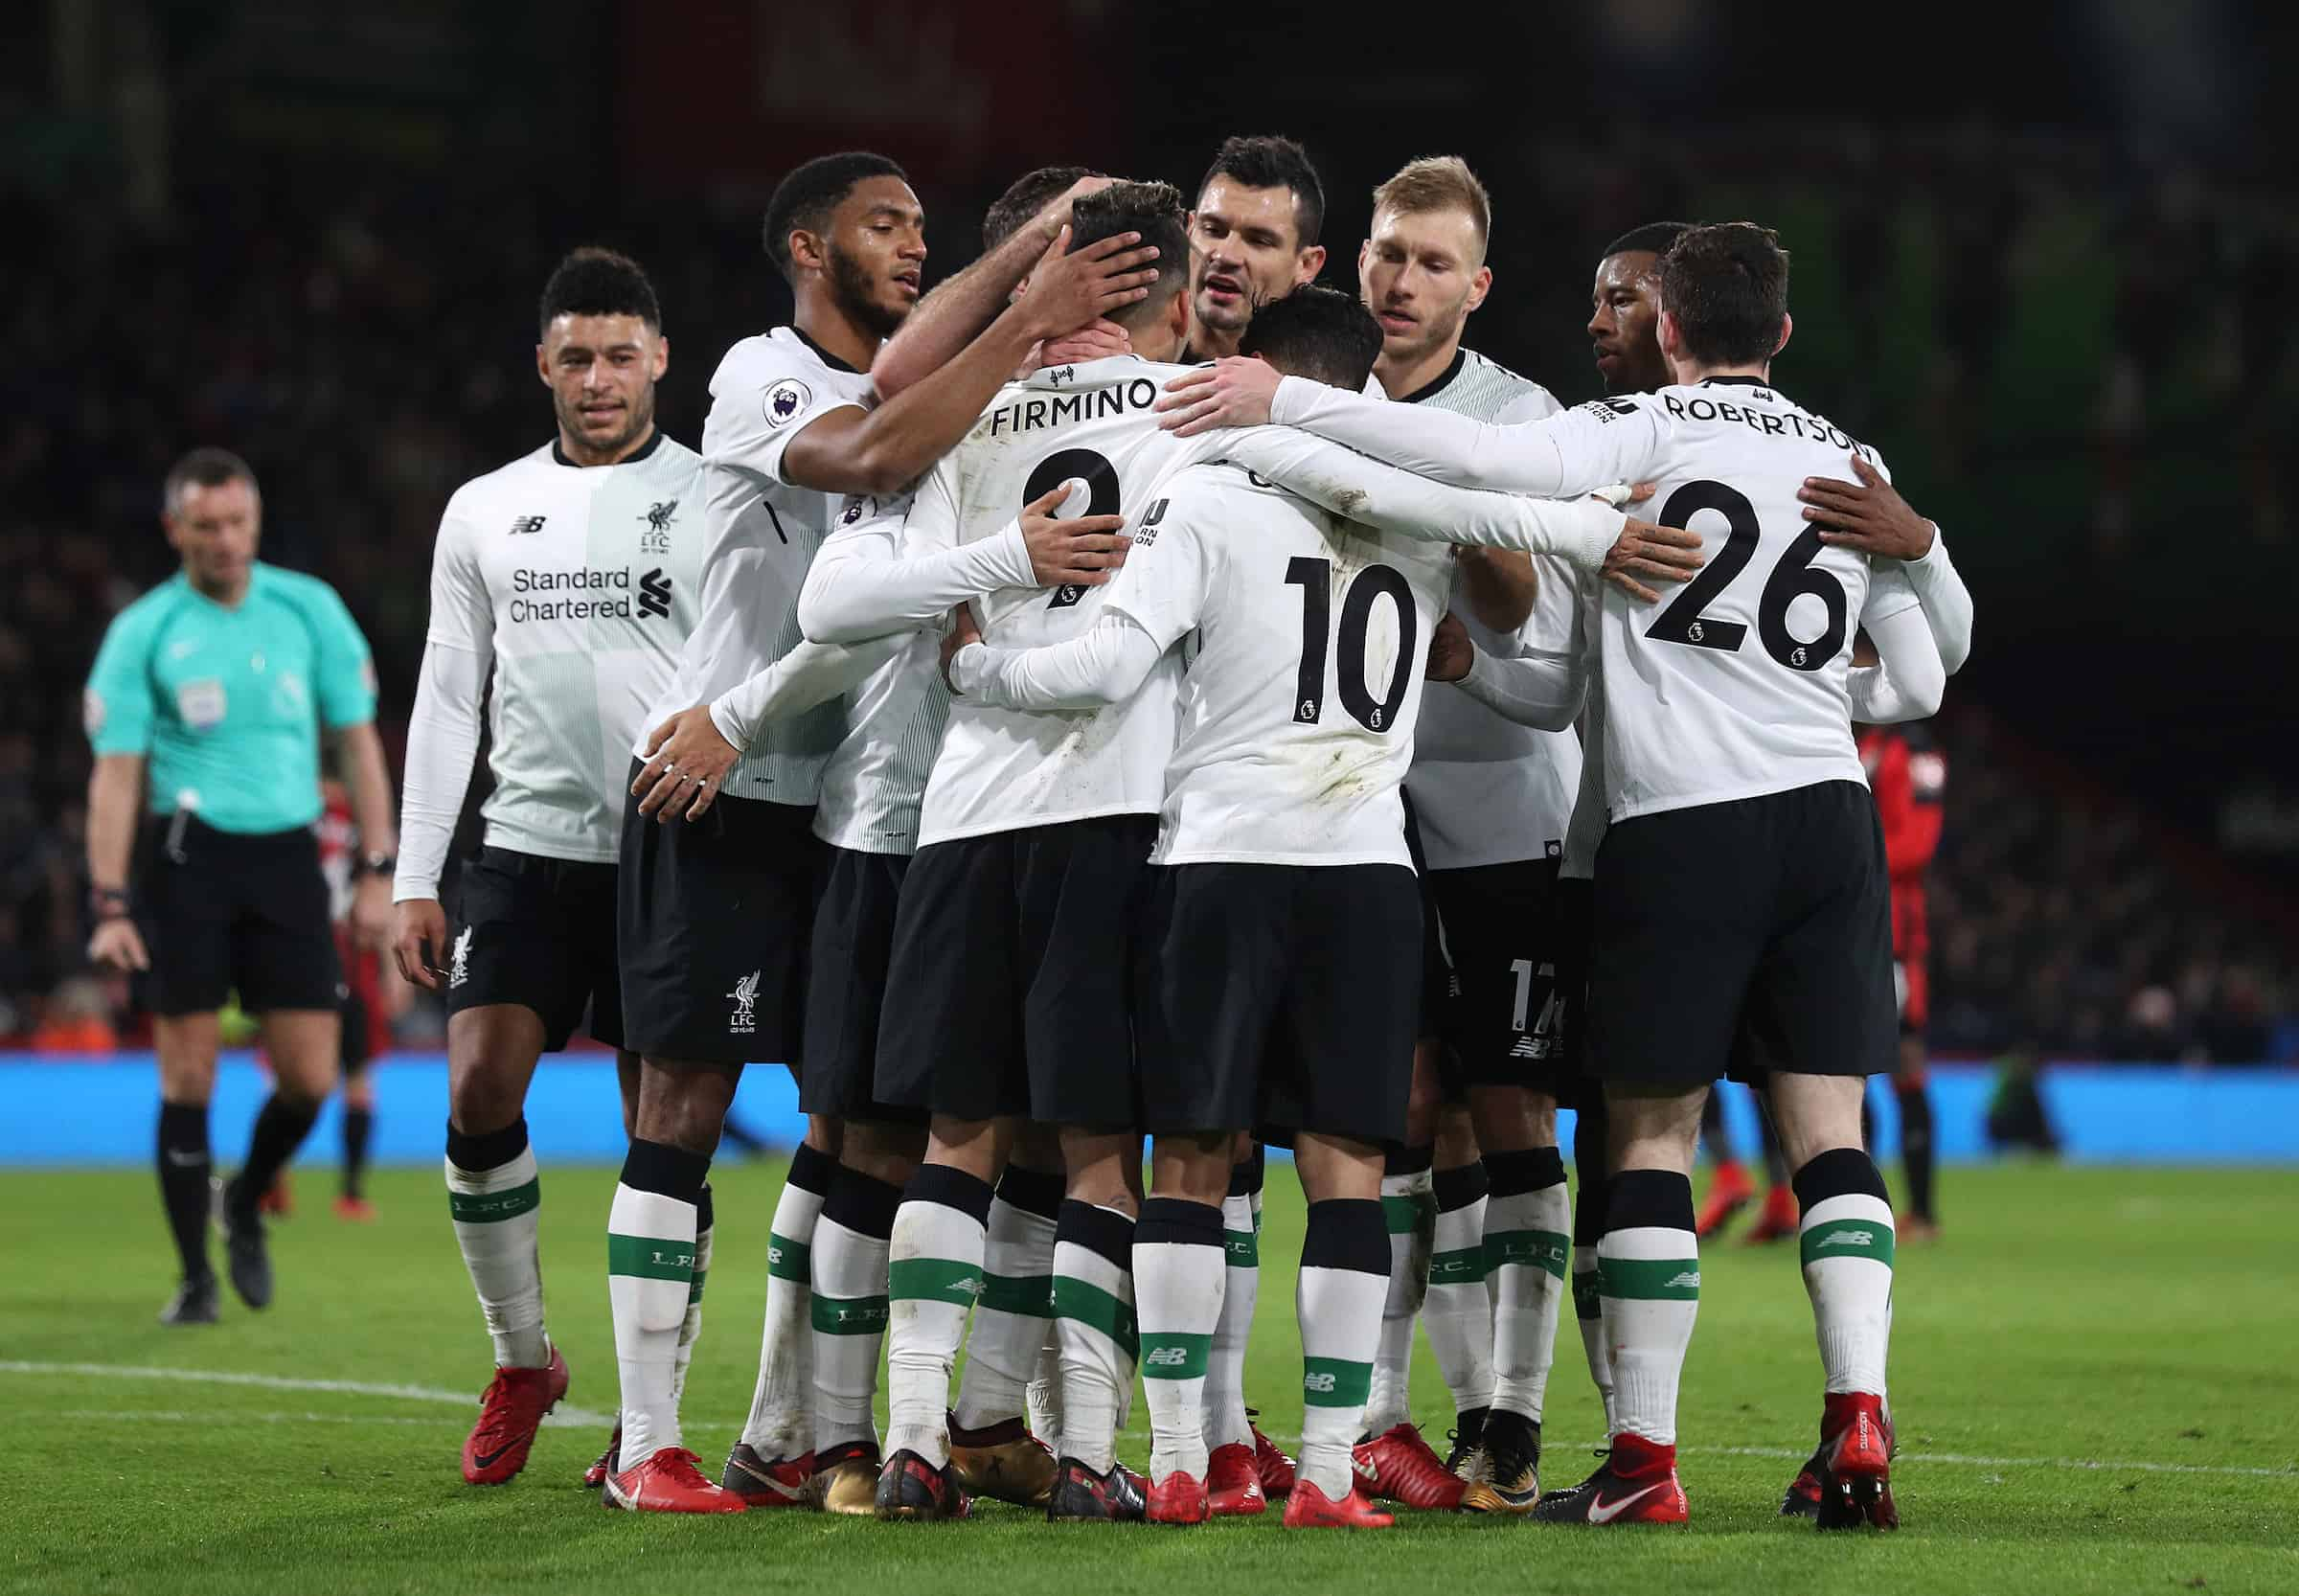 Liverpool's Roberto Firmino is mobbed by his team-mates after scoring his side's fourth goal during the Premier League match at the Vitality Stadium, Bournemouth.